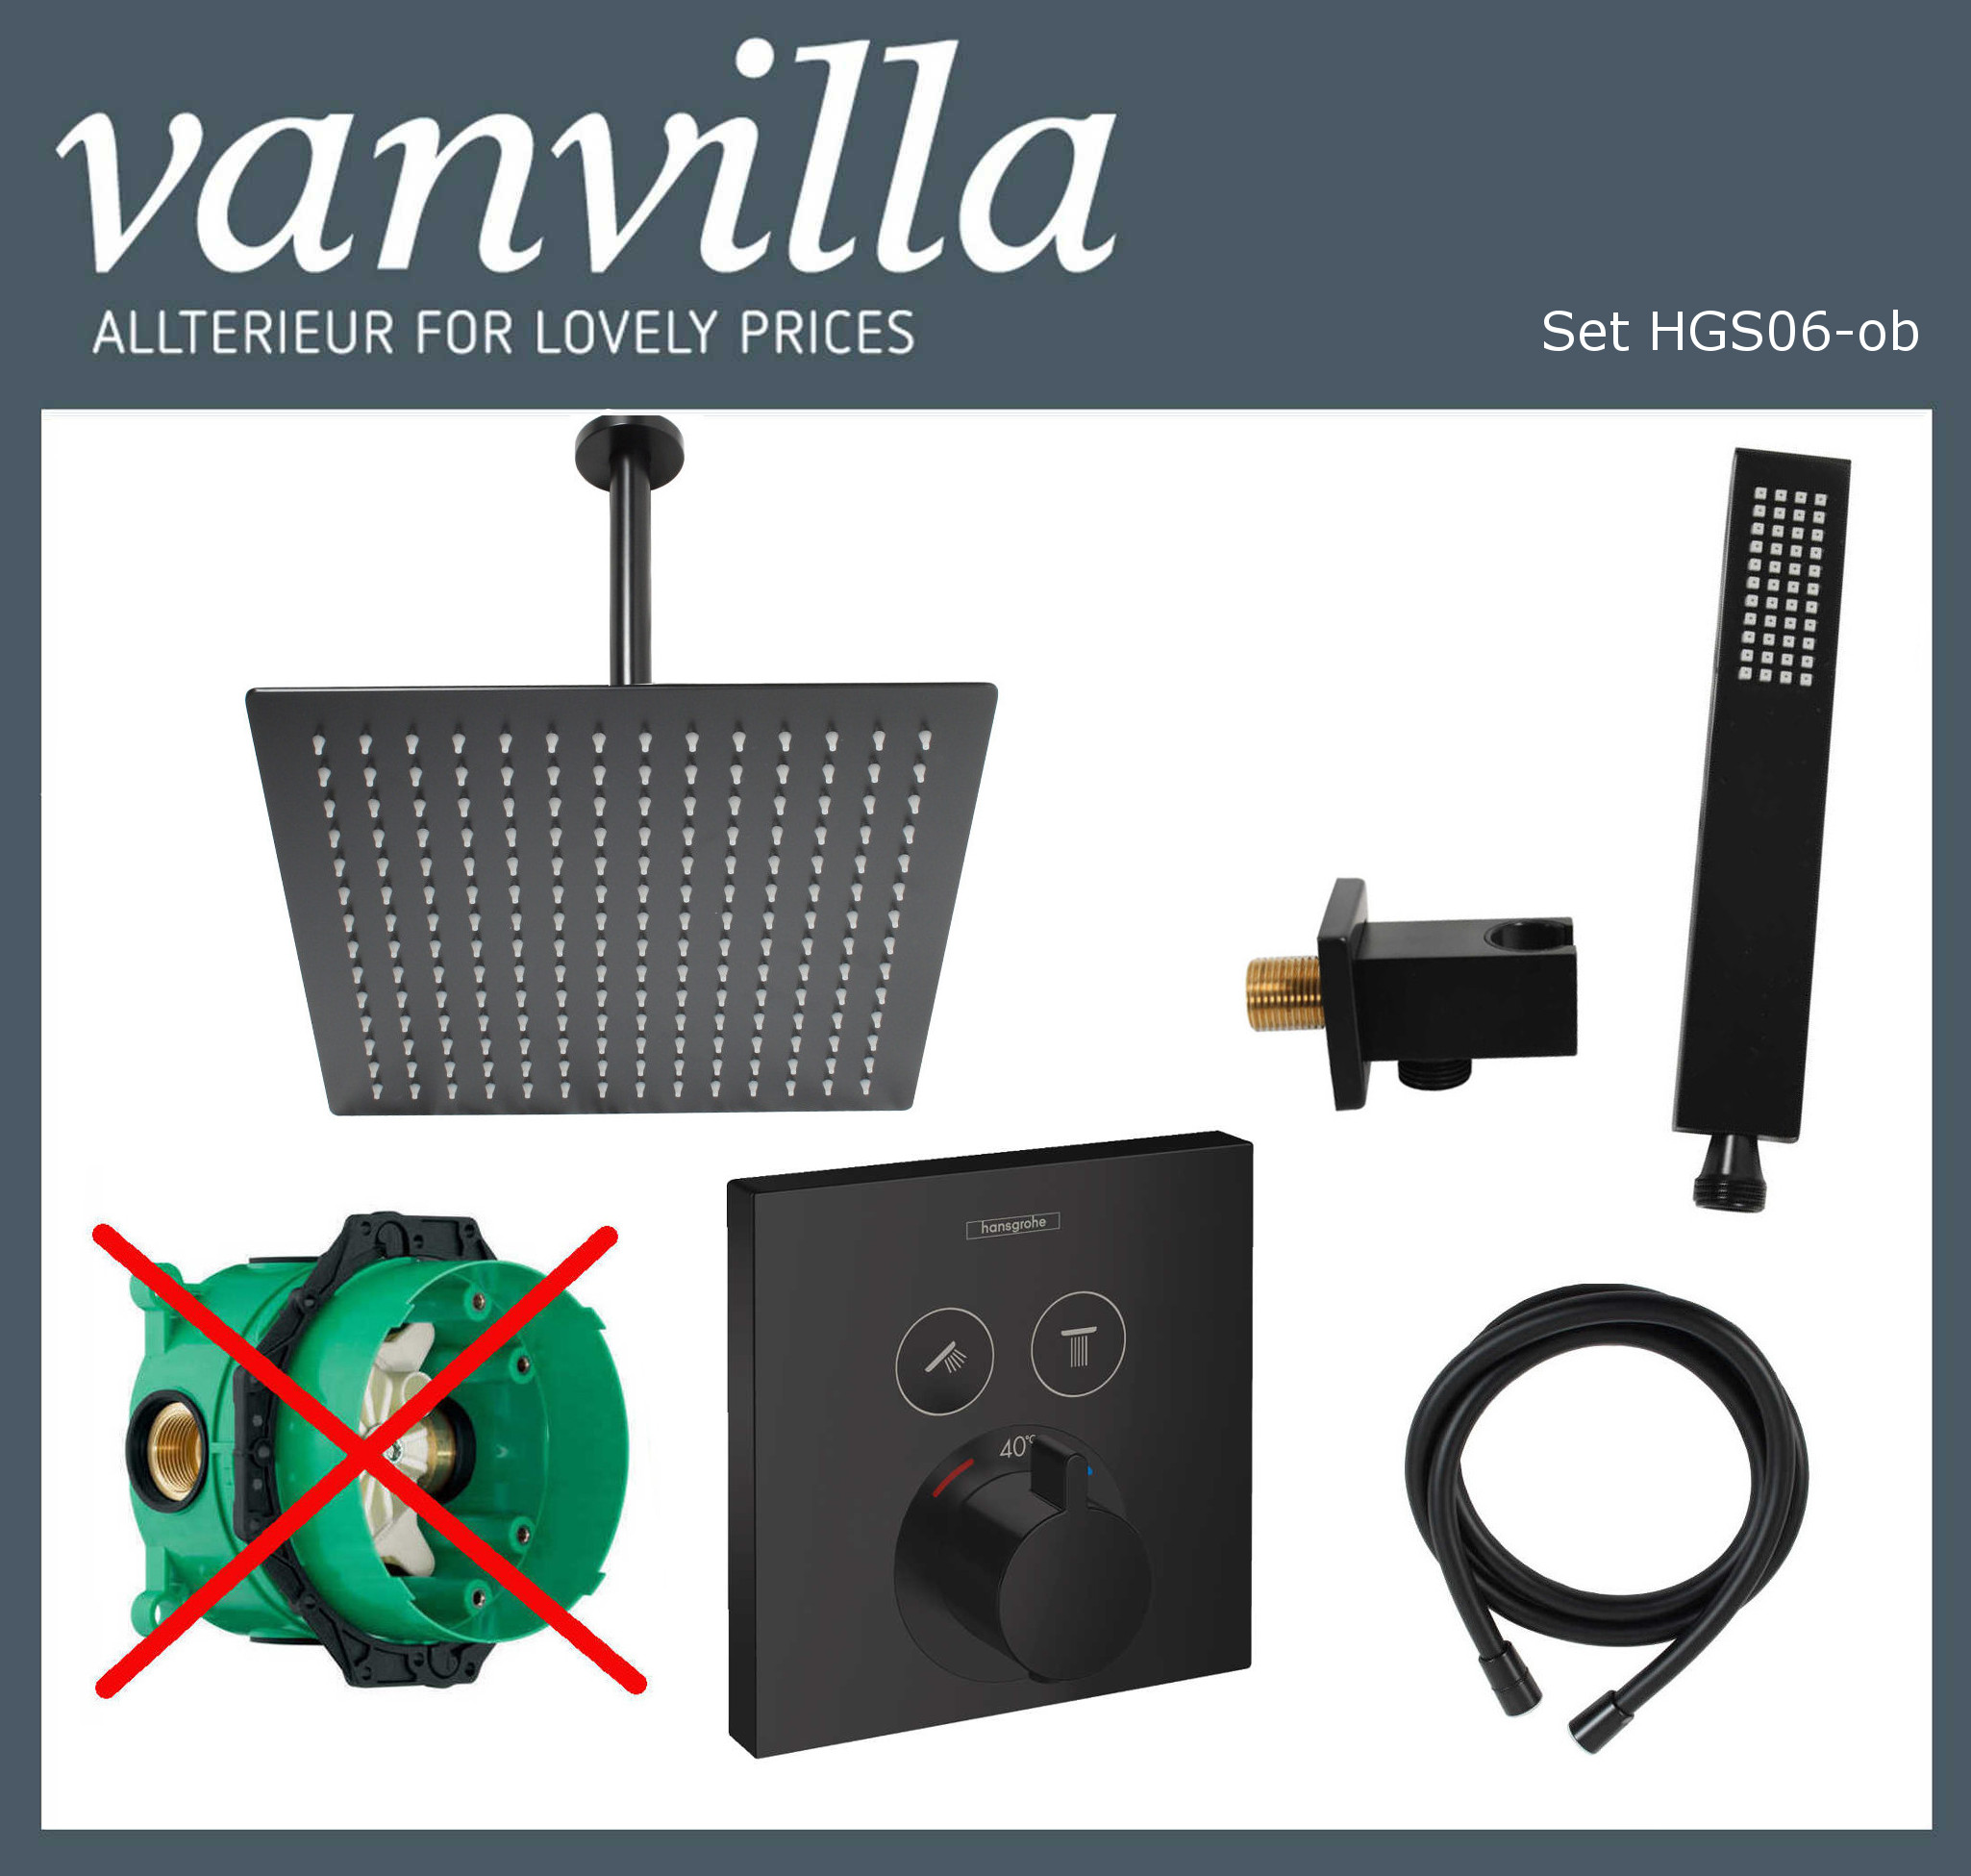 SET HGS06-ob UP vanvilla mit Duscharmatur Hansgrohe ShowerSelect Schwarz